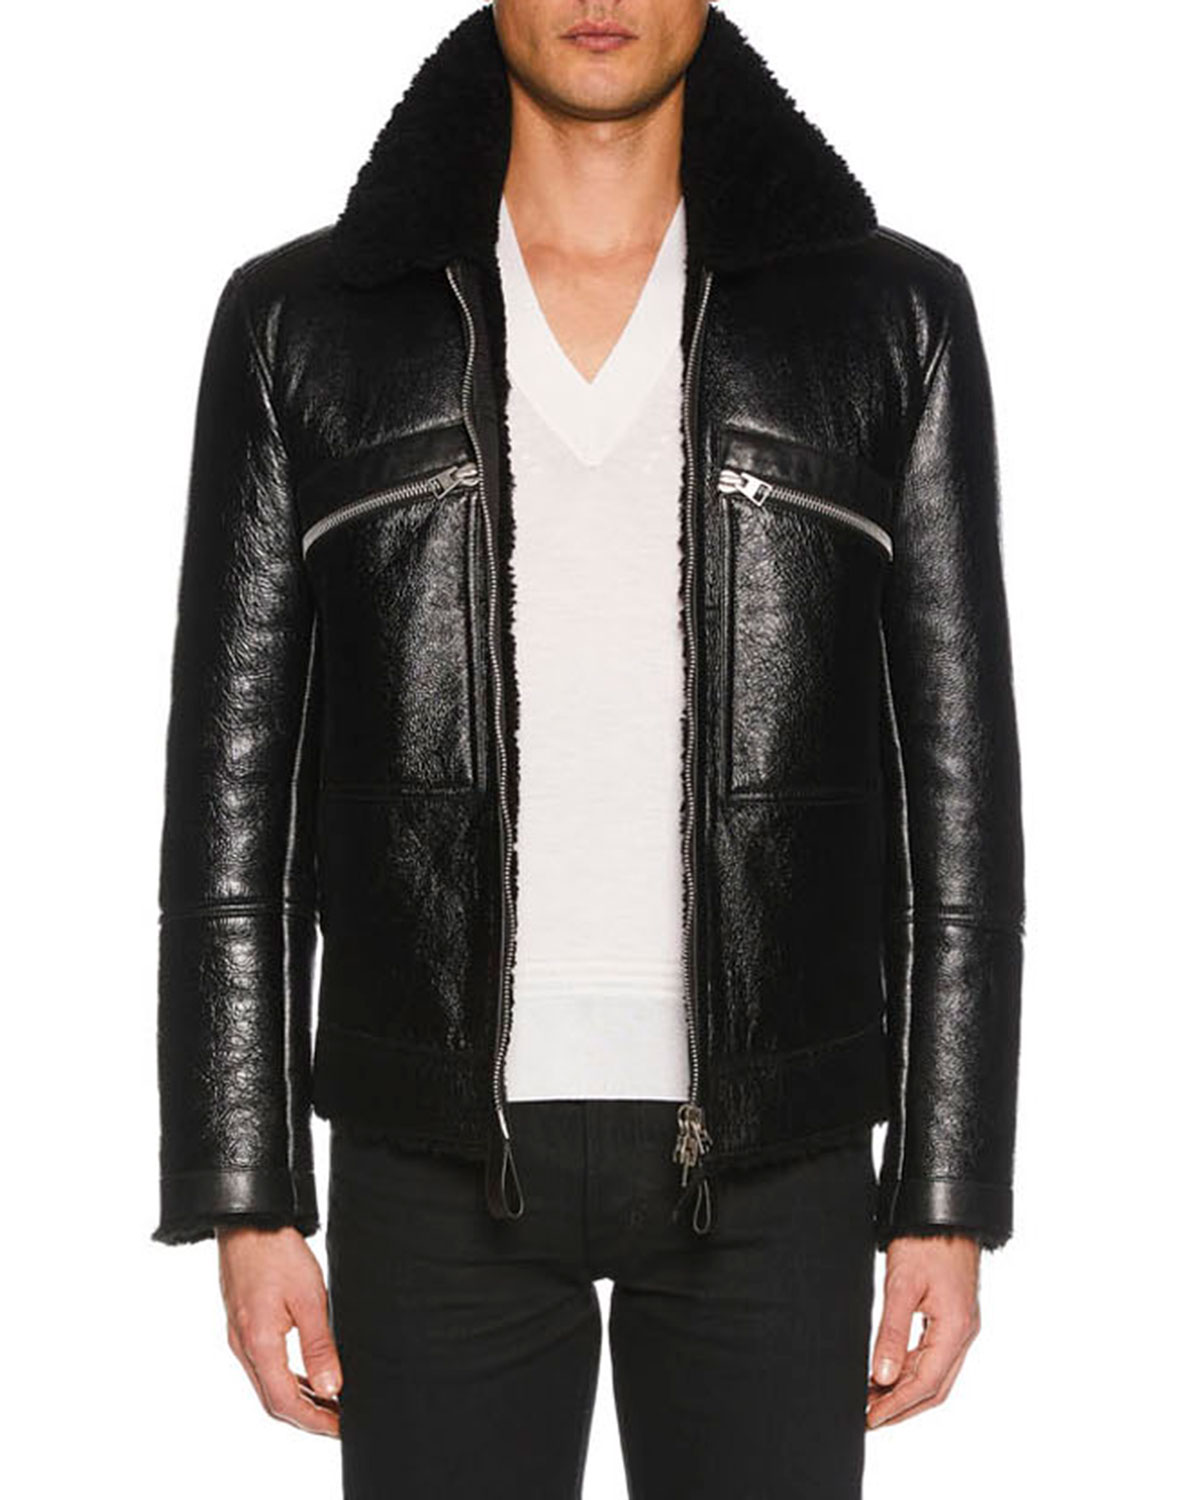 tom ford men 39 s cracked leather jacket with shearling trim. Black Bedroom Furniture Sets. Home Design Ideas